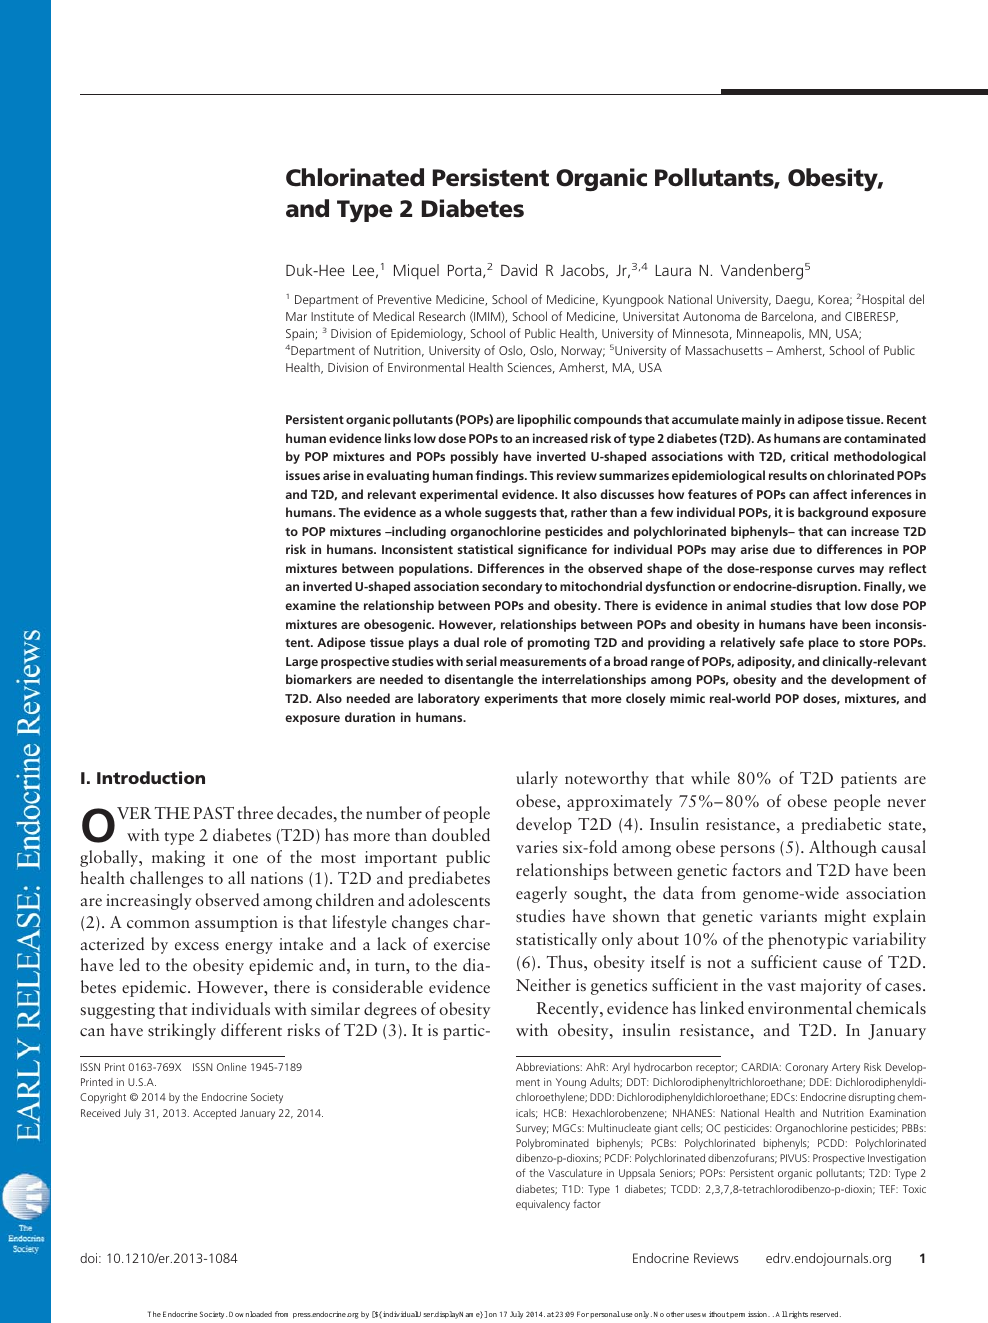 Chlorinated Persistent Organic Pollutants, Obesity, and Type 2